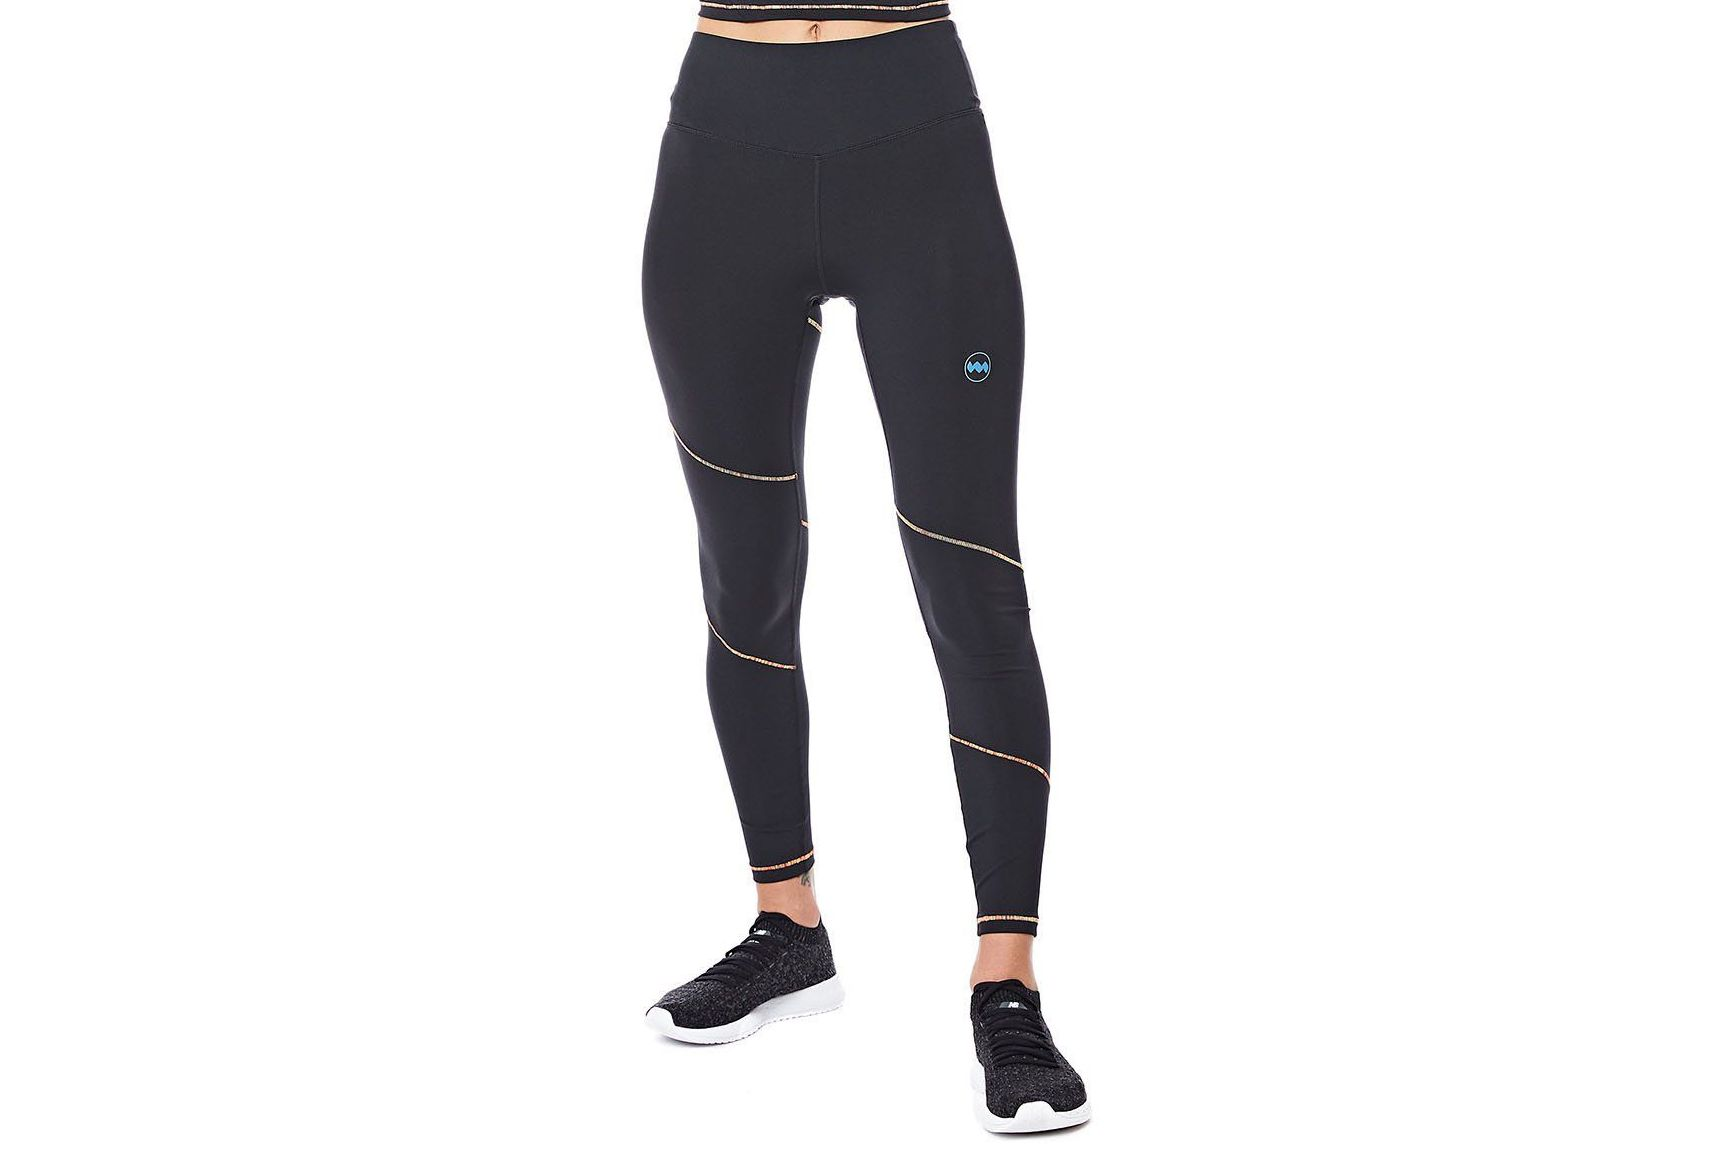 a474959929 Best Tights for Running | Leggings With Pockets 2019